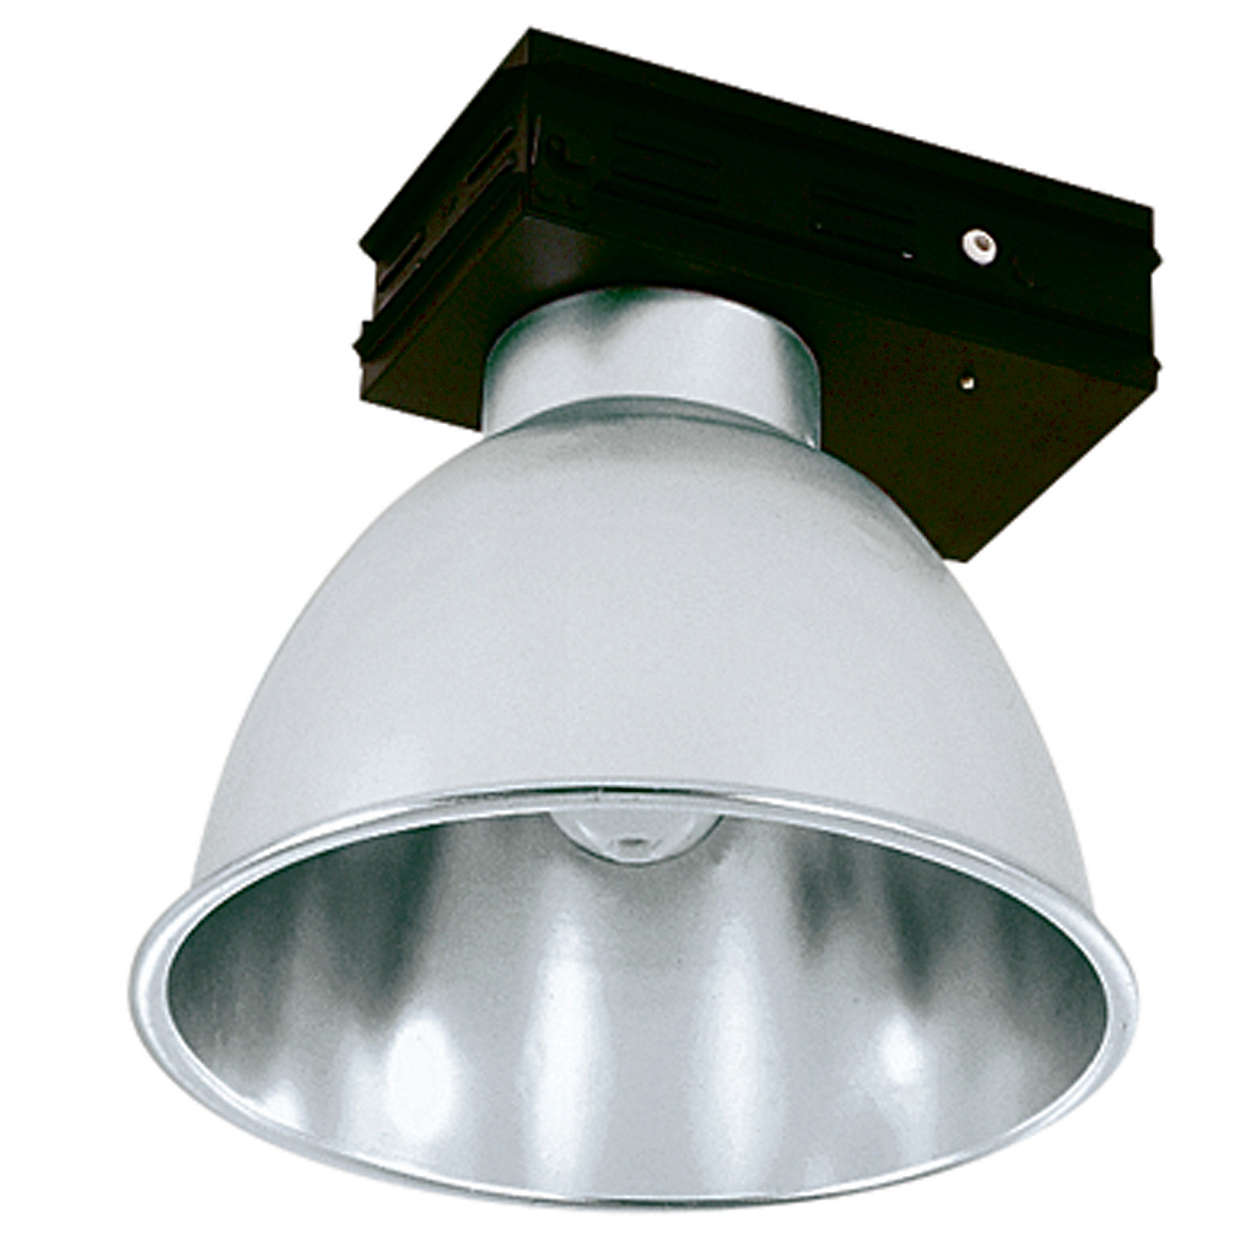 HDK472 / 473 / 474 – Ultra conveniente. Luminária industrial modular